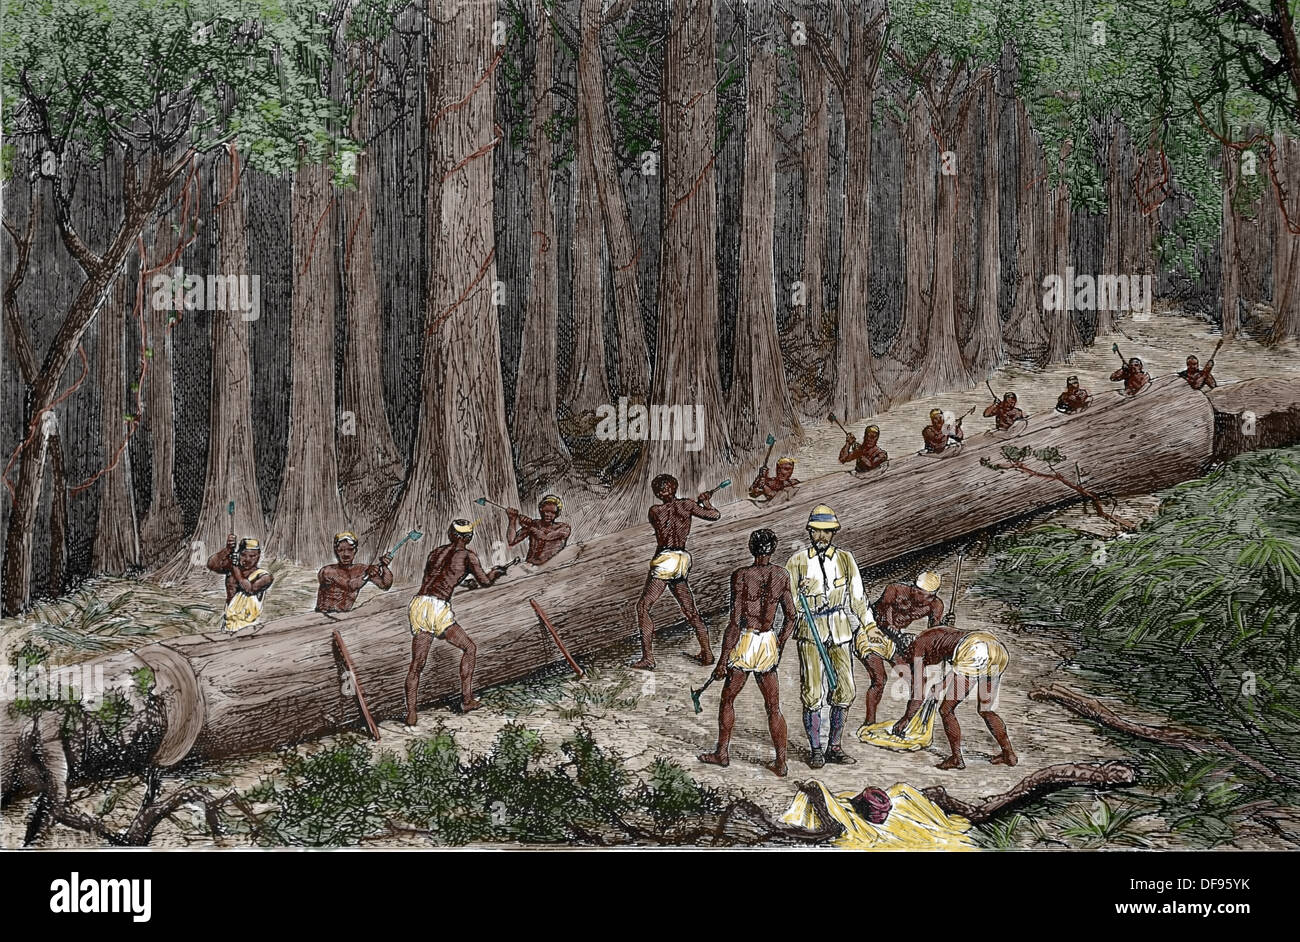 """Africa. Stanley Expedition. Cutting Out the New """"Livingstone Canoe"""". Colored engraving. Stock Photo"""